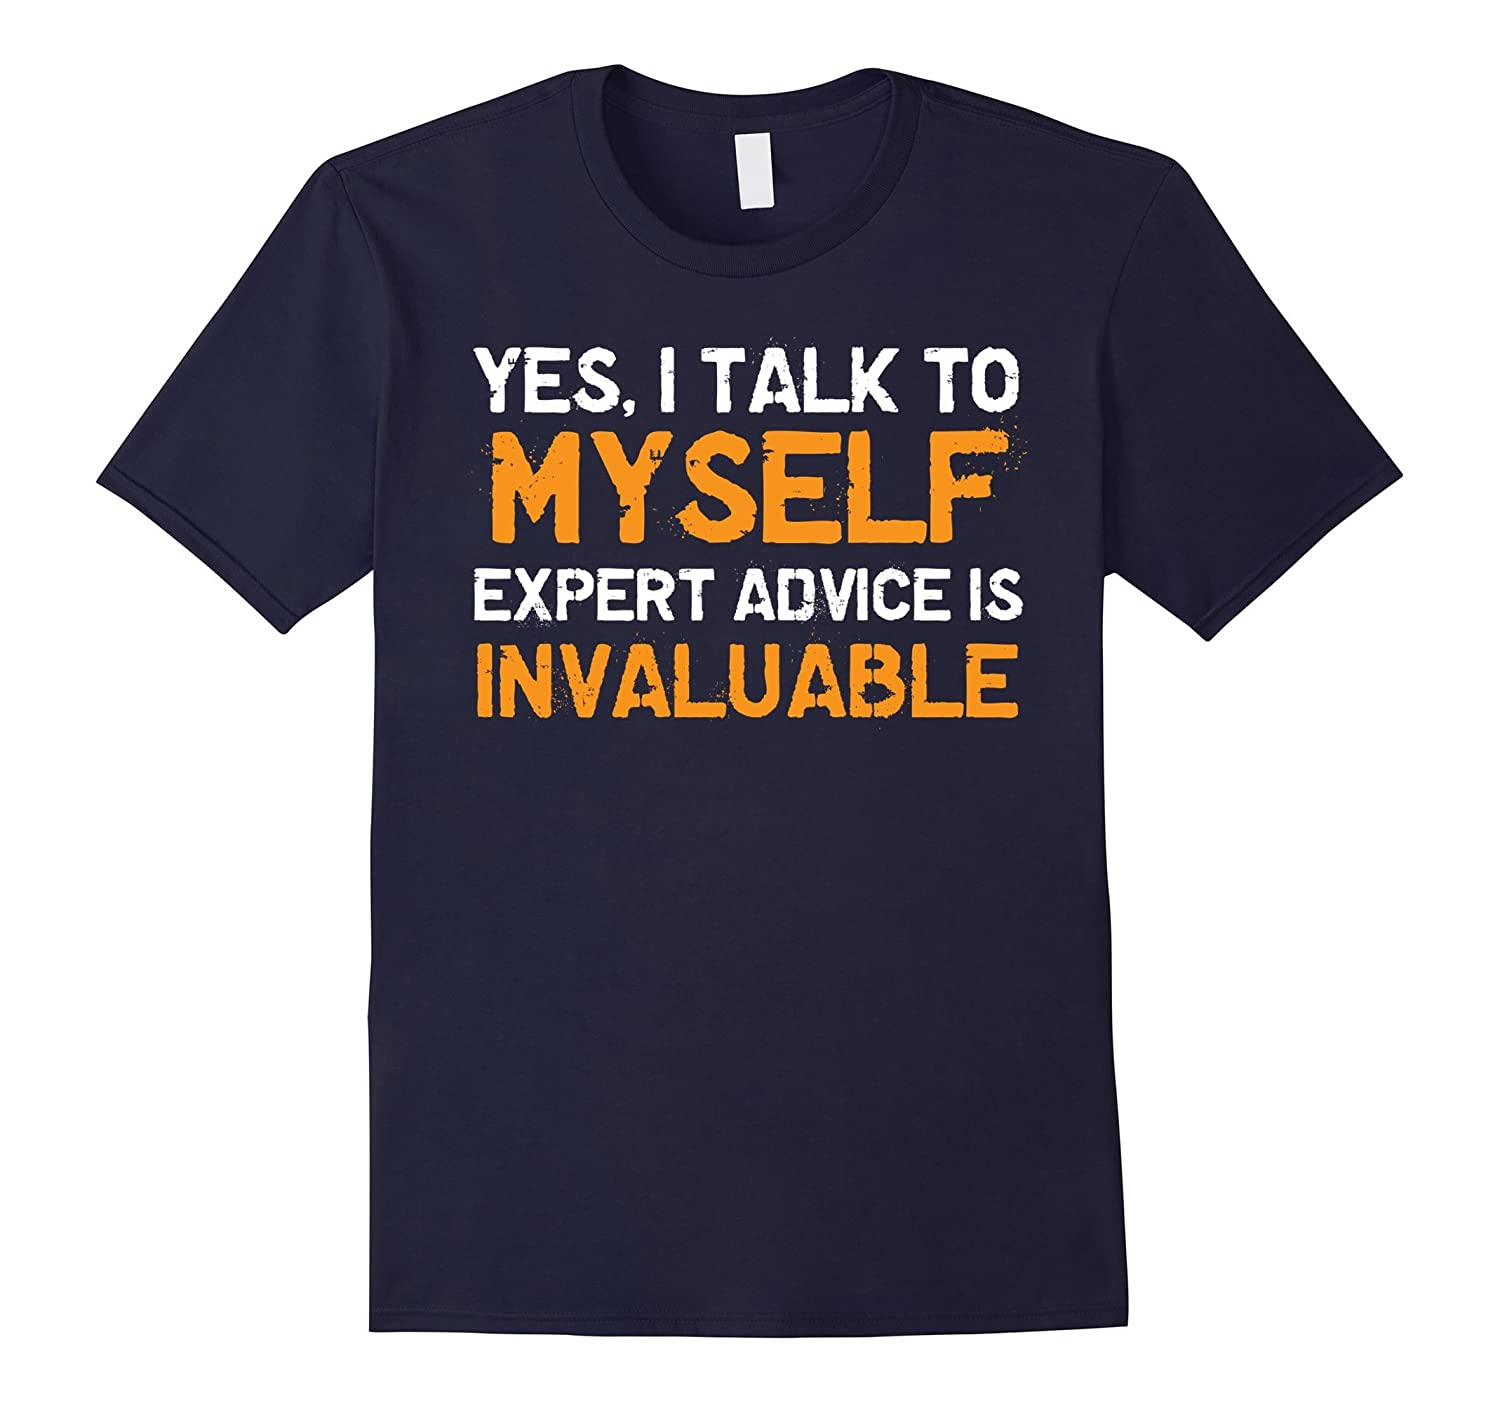 Yes I Talk To Myself Shirt - Funny Sarcastic Tee for All-Vaci